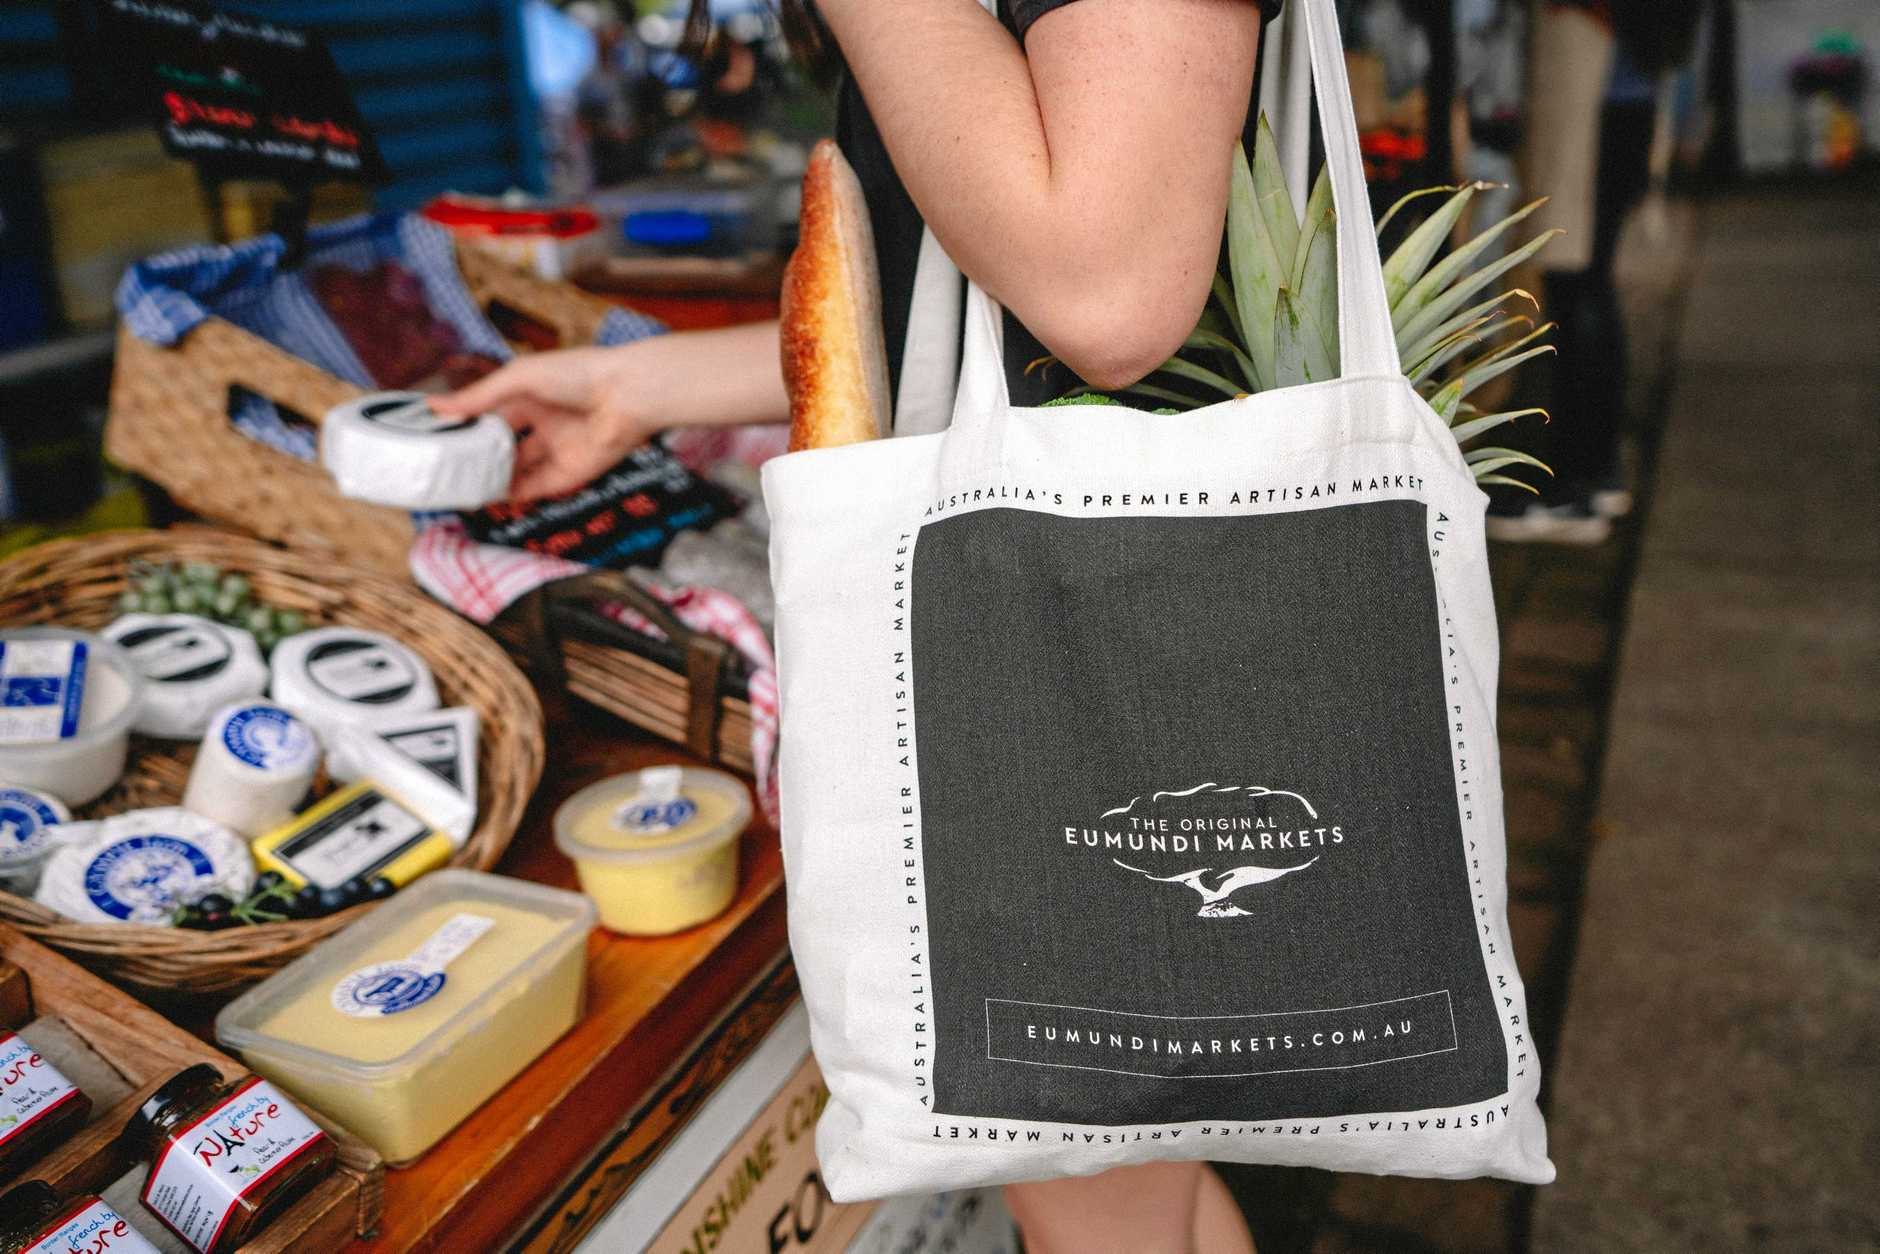 The new Eumundi Markets tote bag is helping win the fight against single-use plastic.